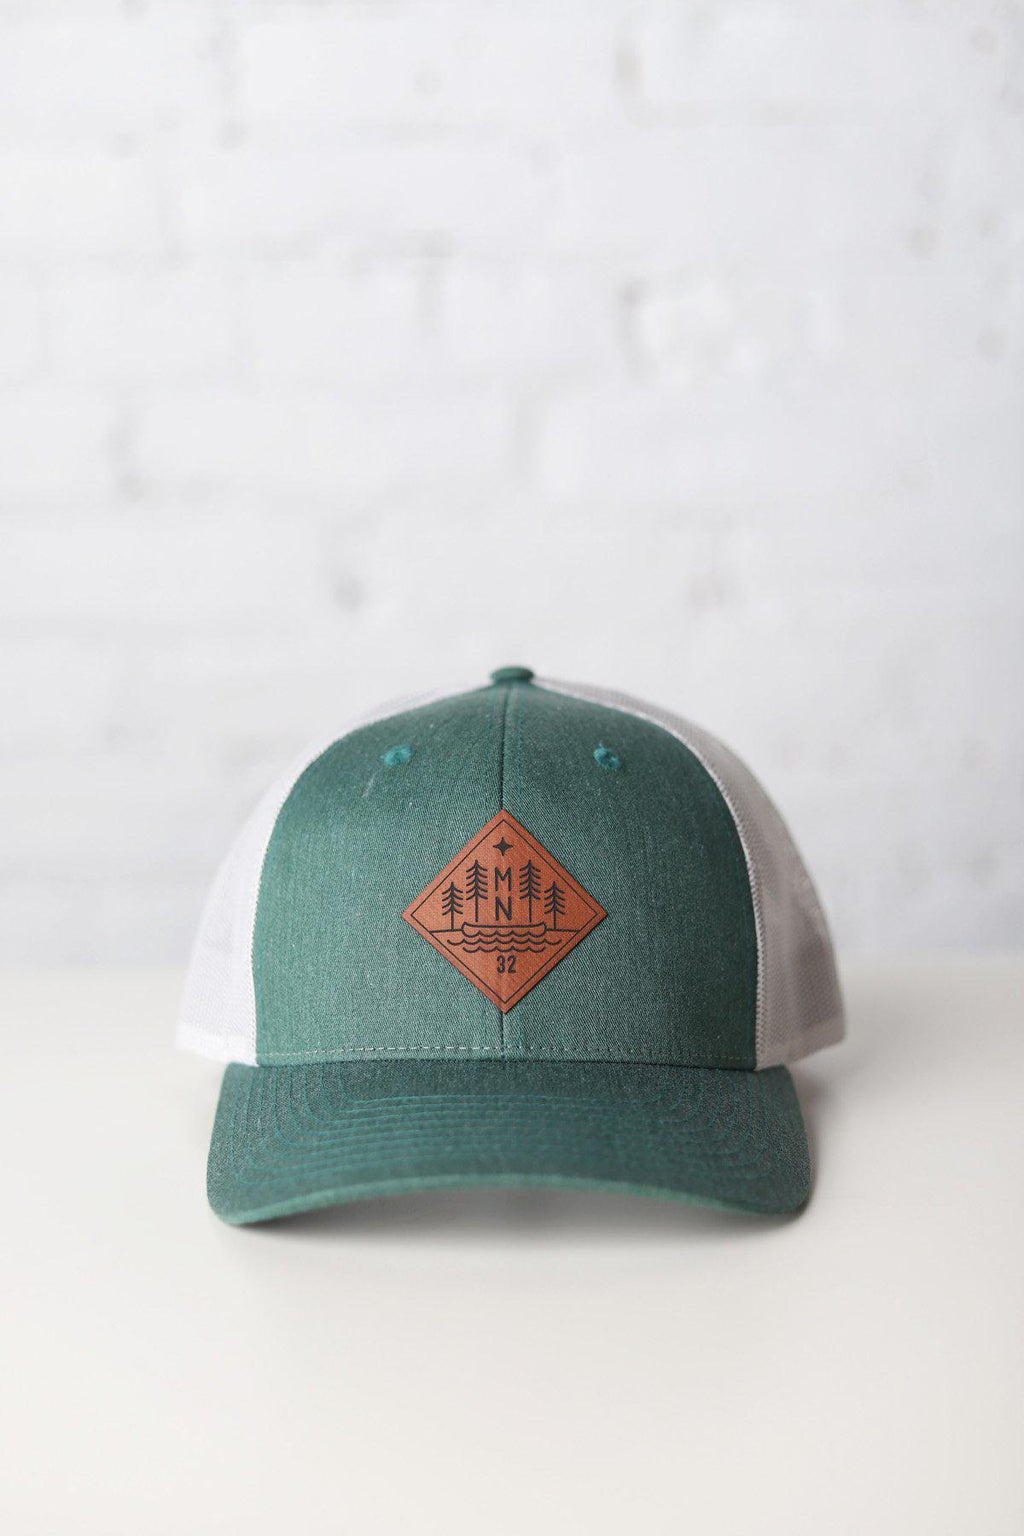 Evergreen Snap Back Hat - Gallery 512 Boutique